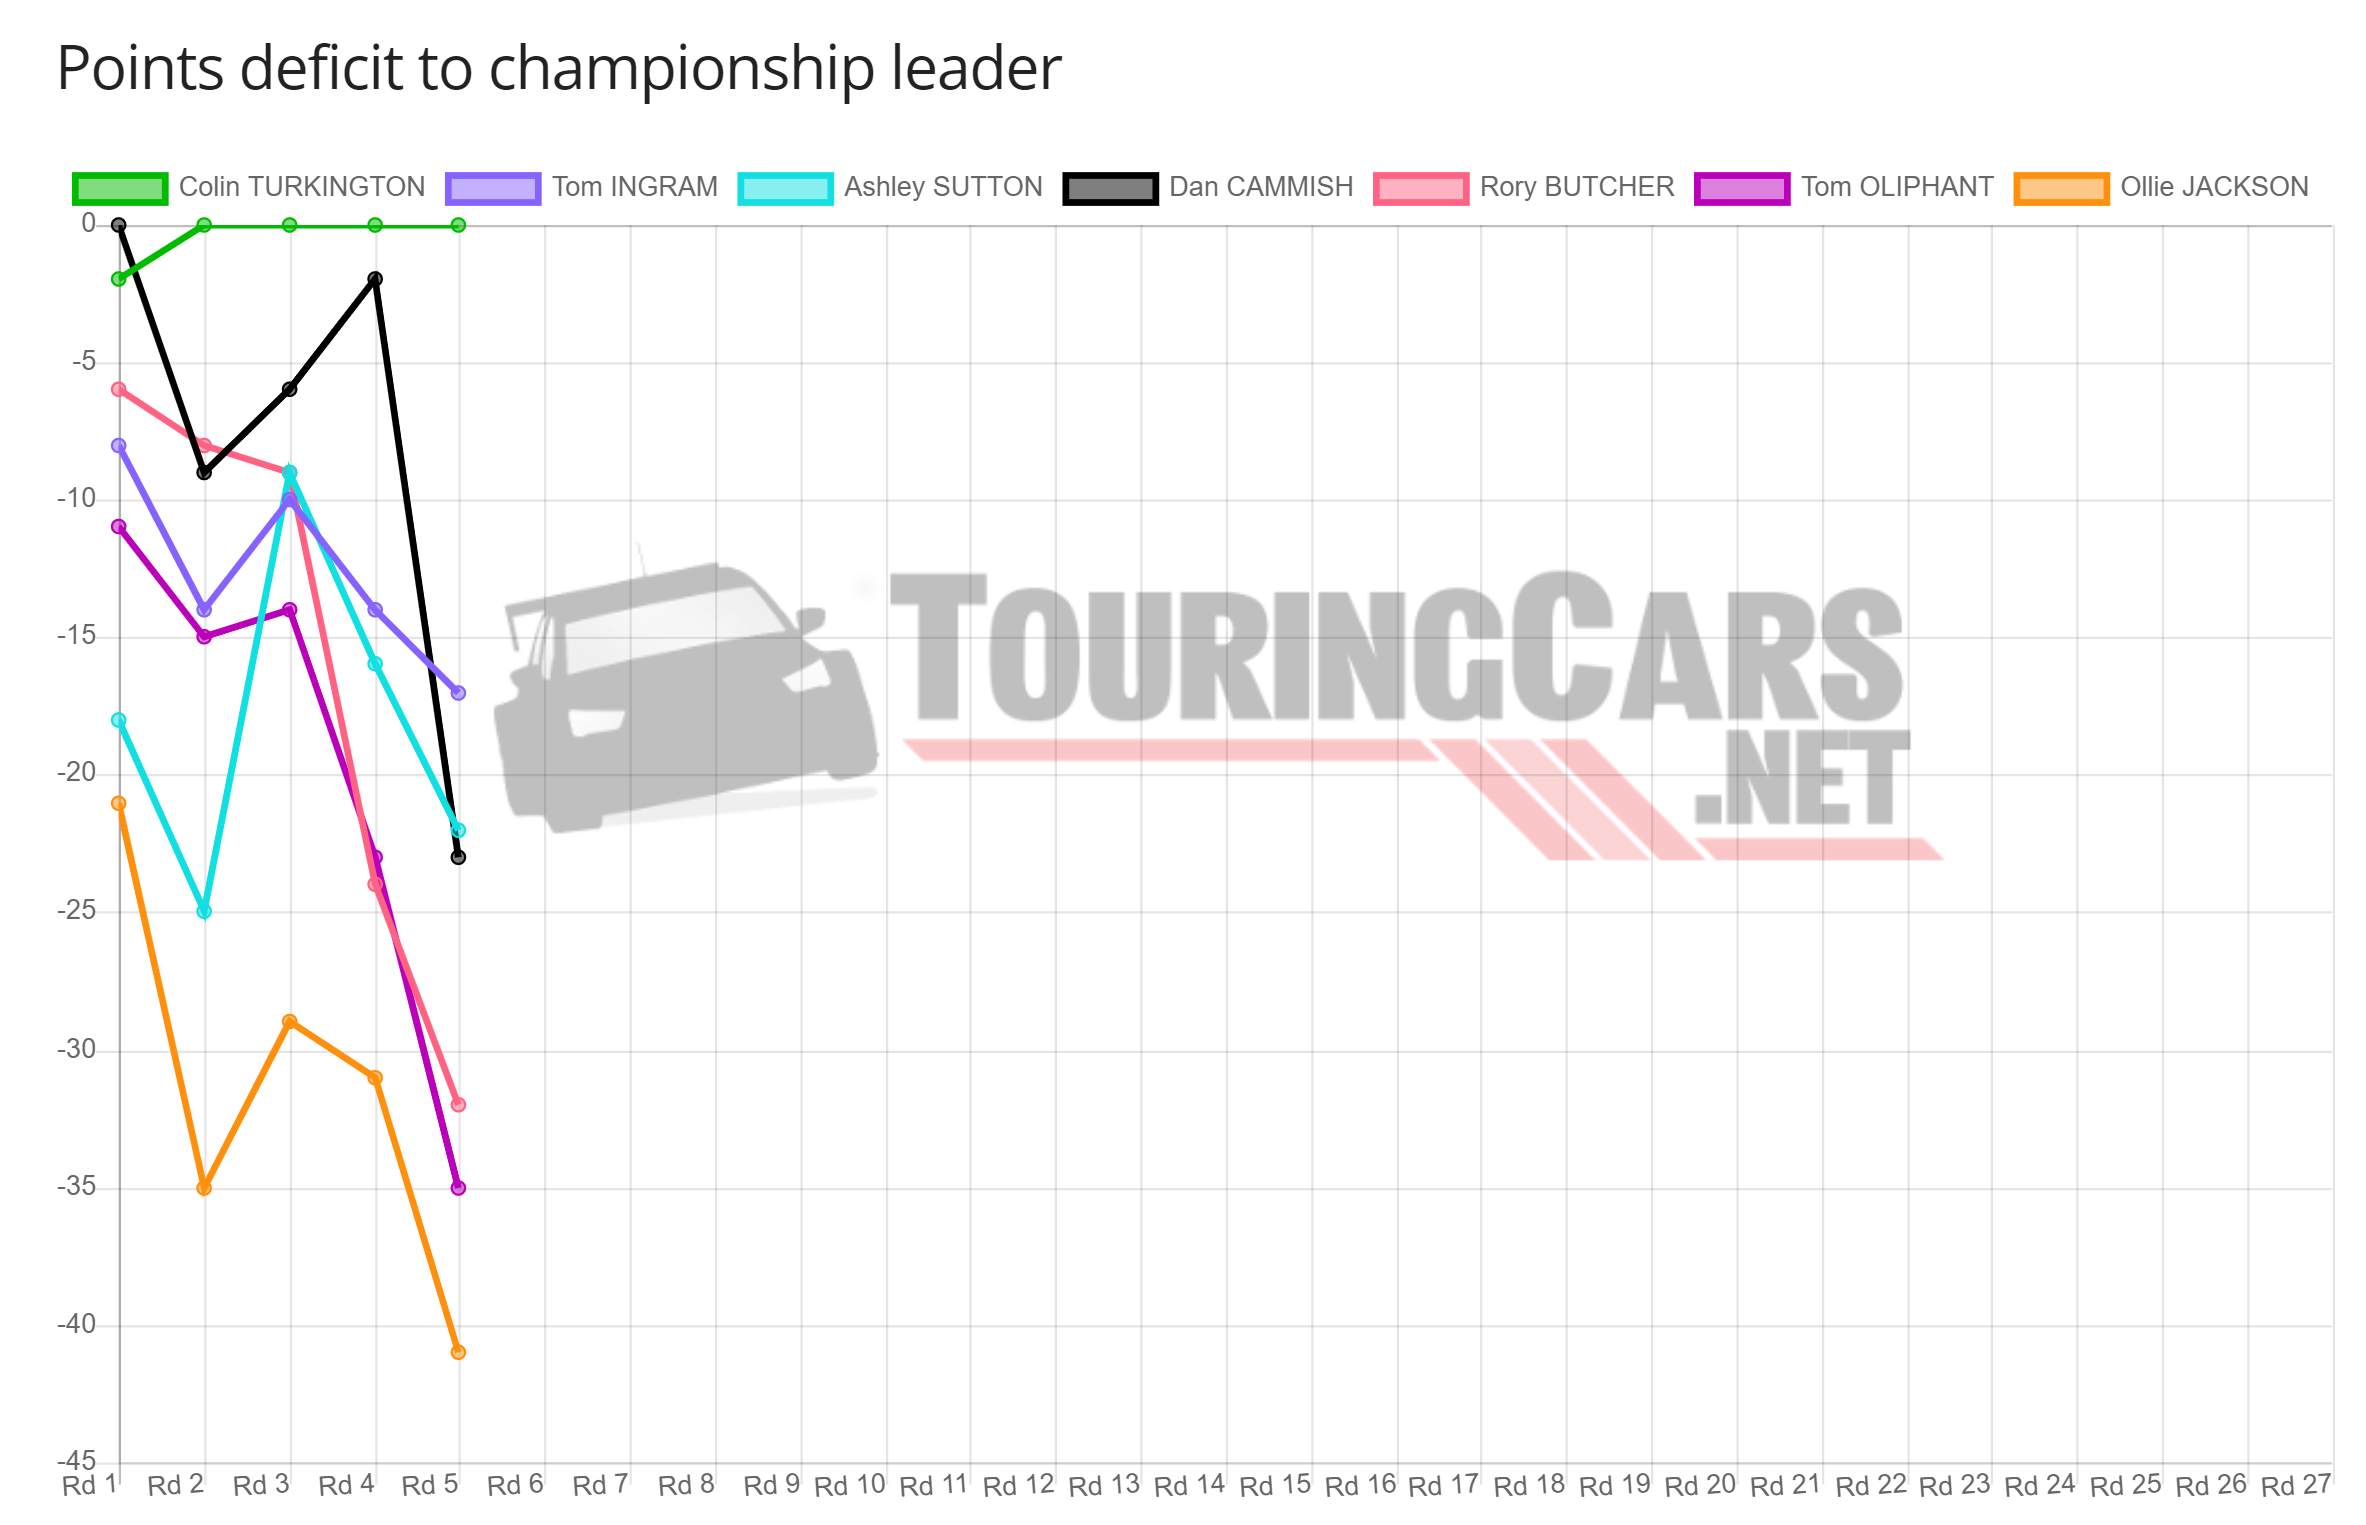 BTCC points deficit after Round 5